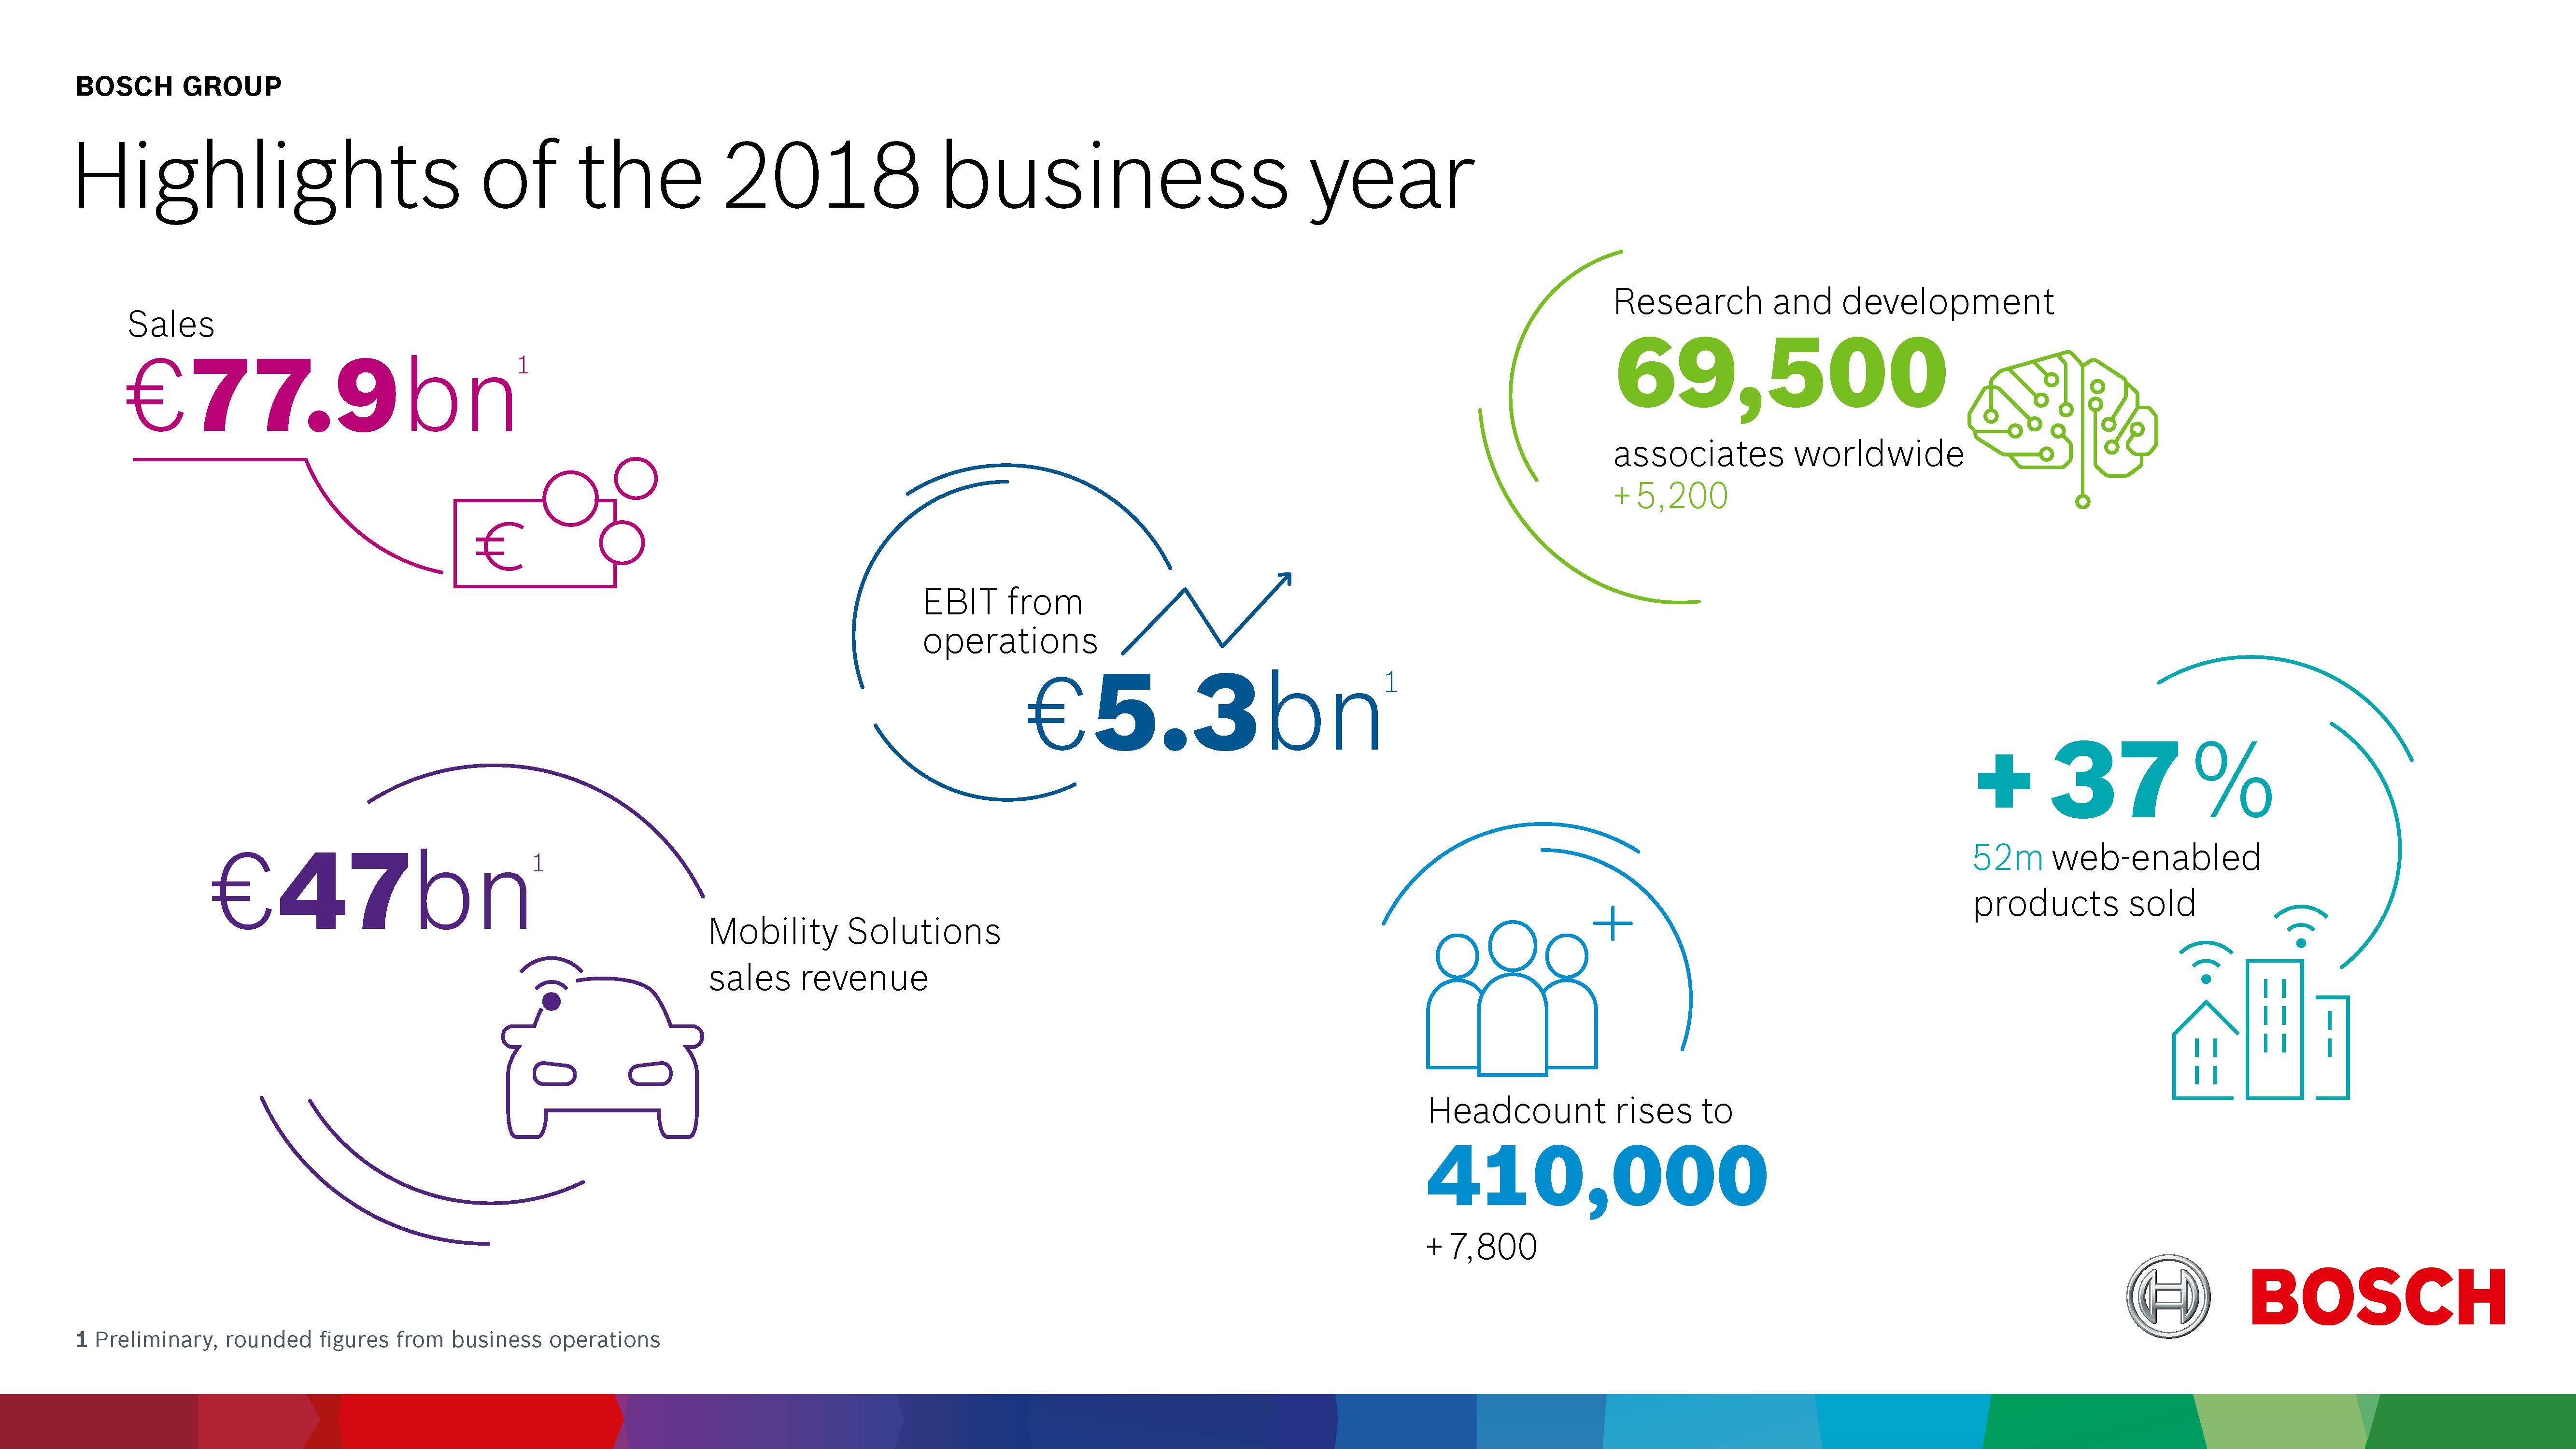 Highlights of the 2018 business year